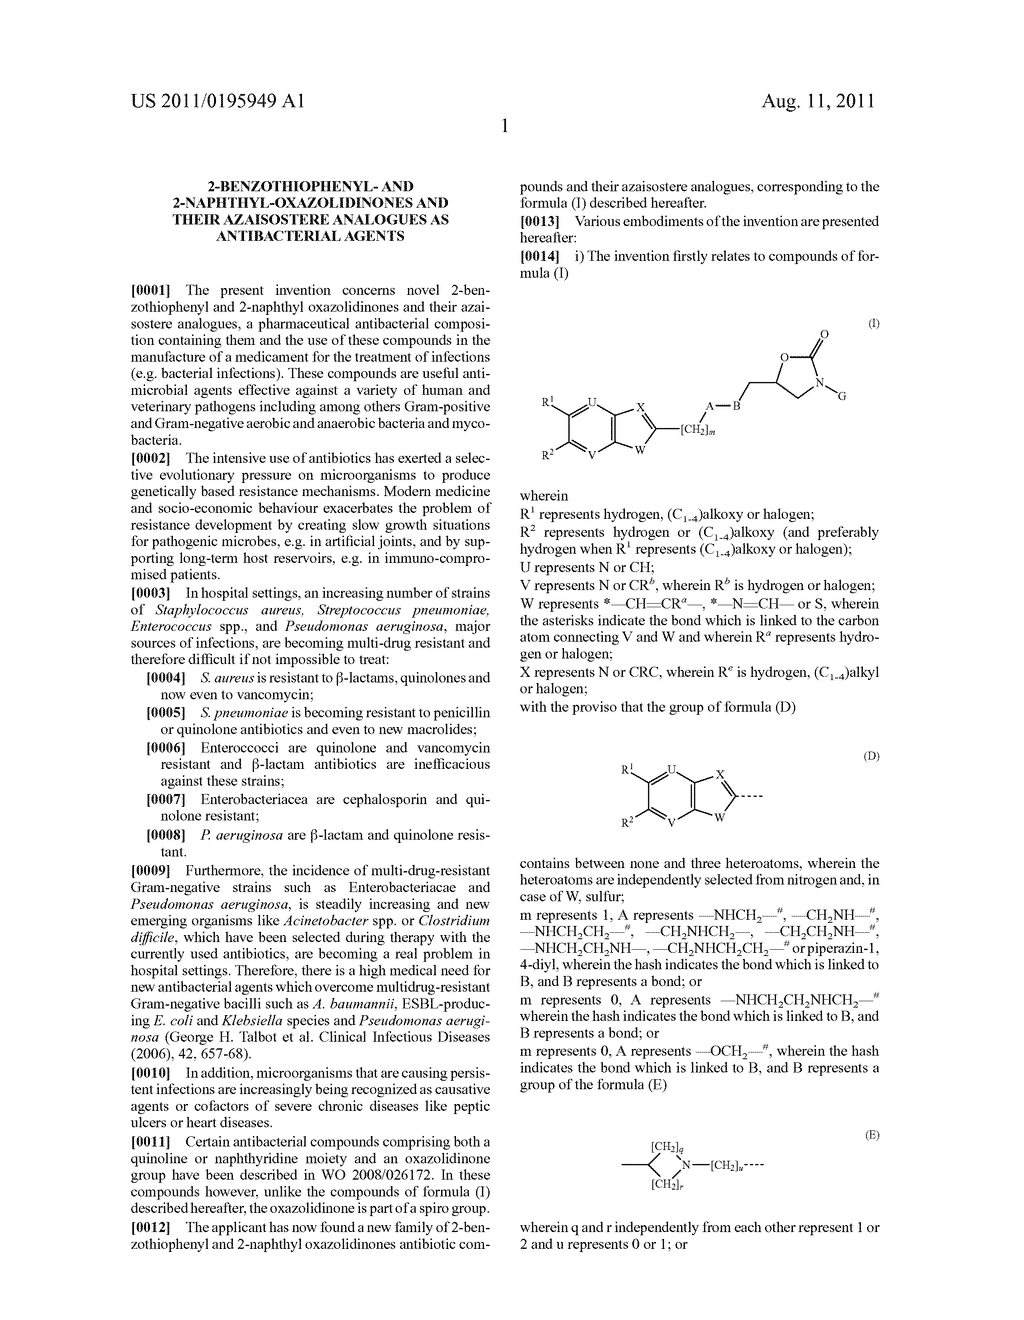 2-BENZOTHIOPHENYL- AND 2-NAPHTHYL-OXAZOLIDINONES AND THEIR AZAISOSTERE     ANALOGUES AS ANTIBACTERIAL AGENTS - diagram, schematic, and image 02